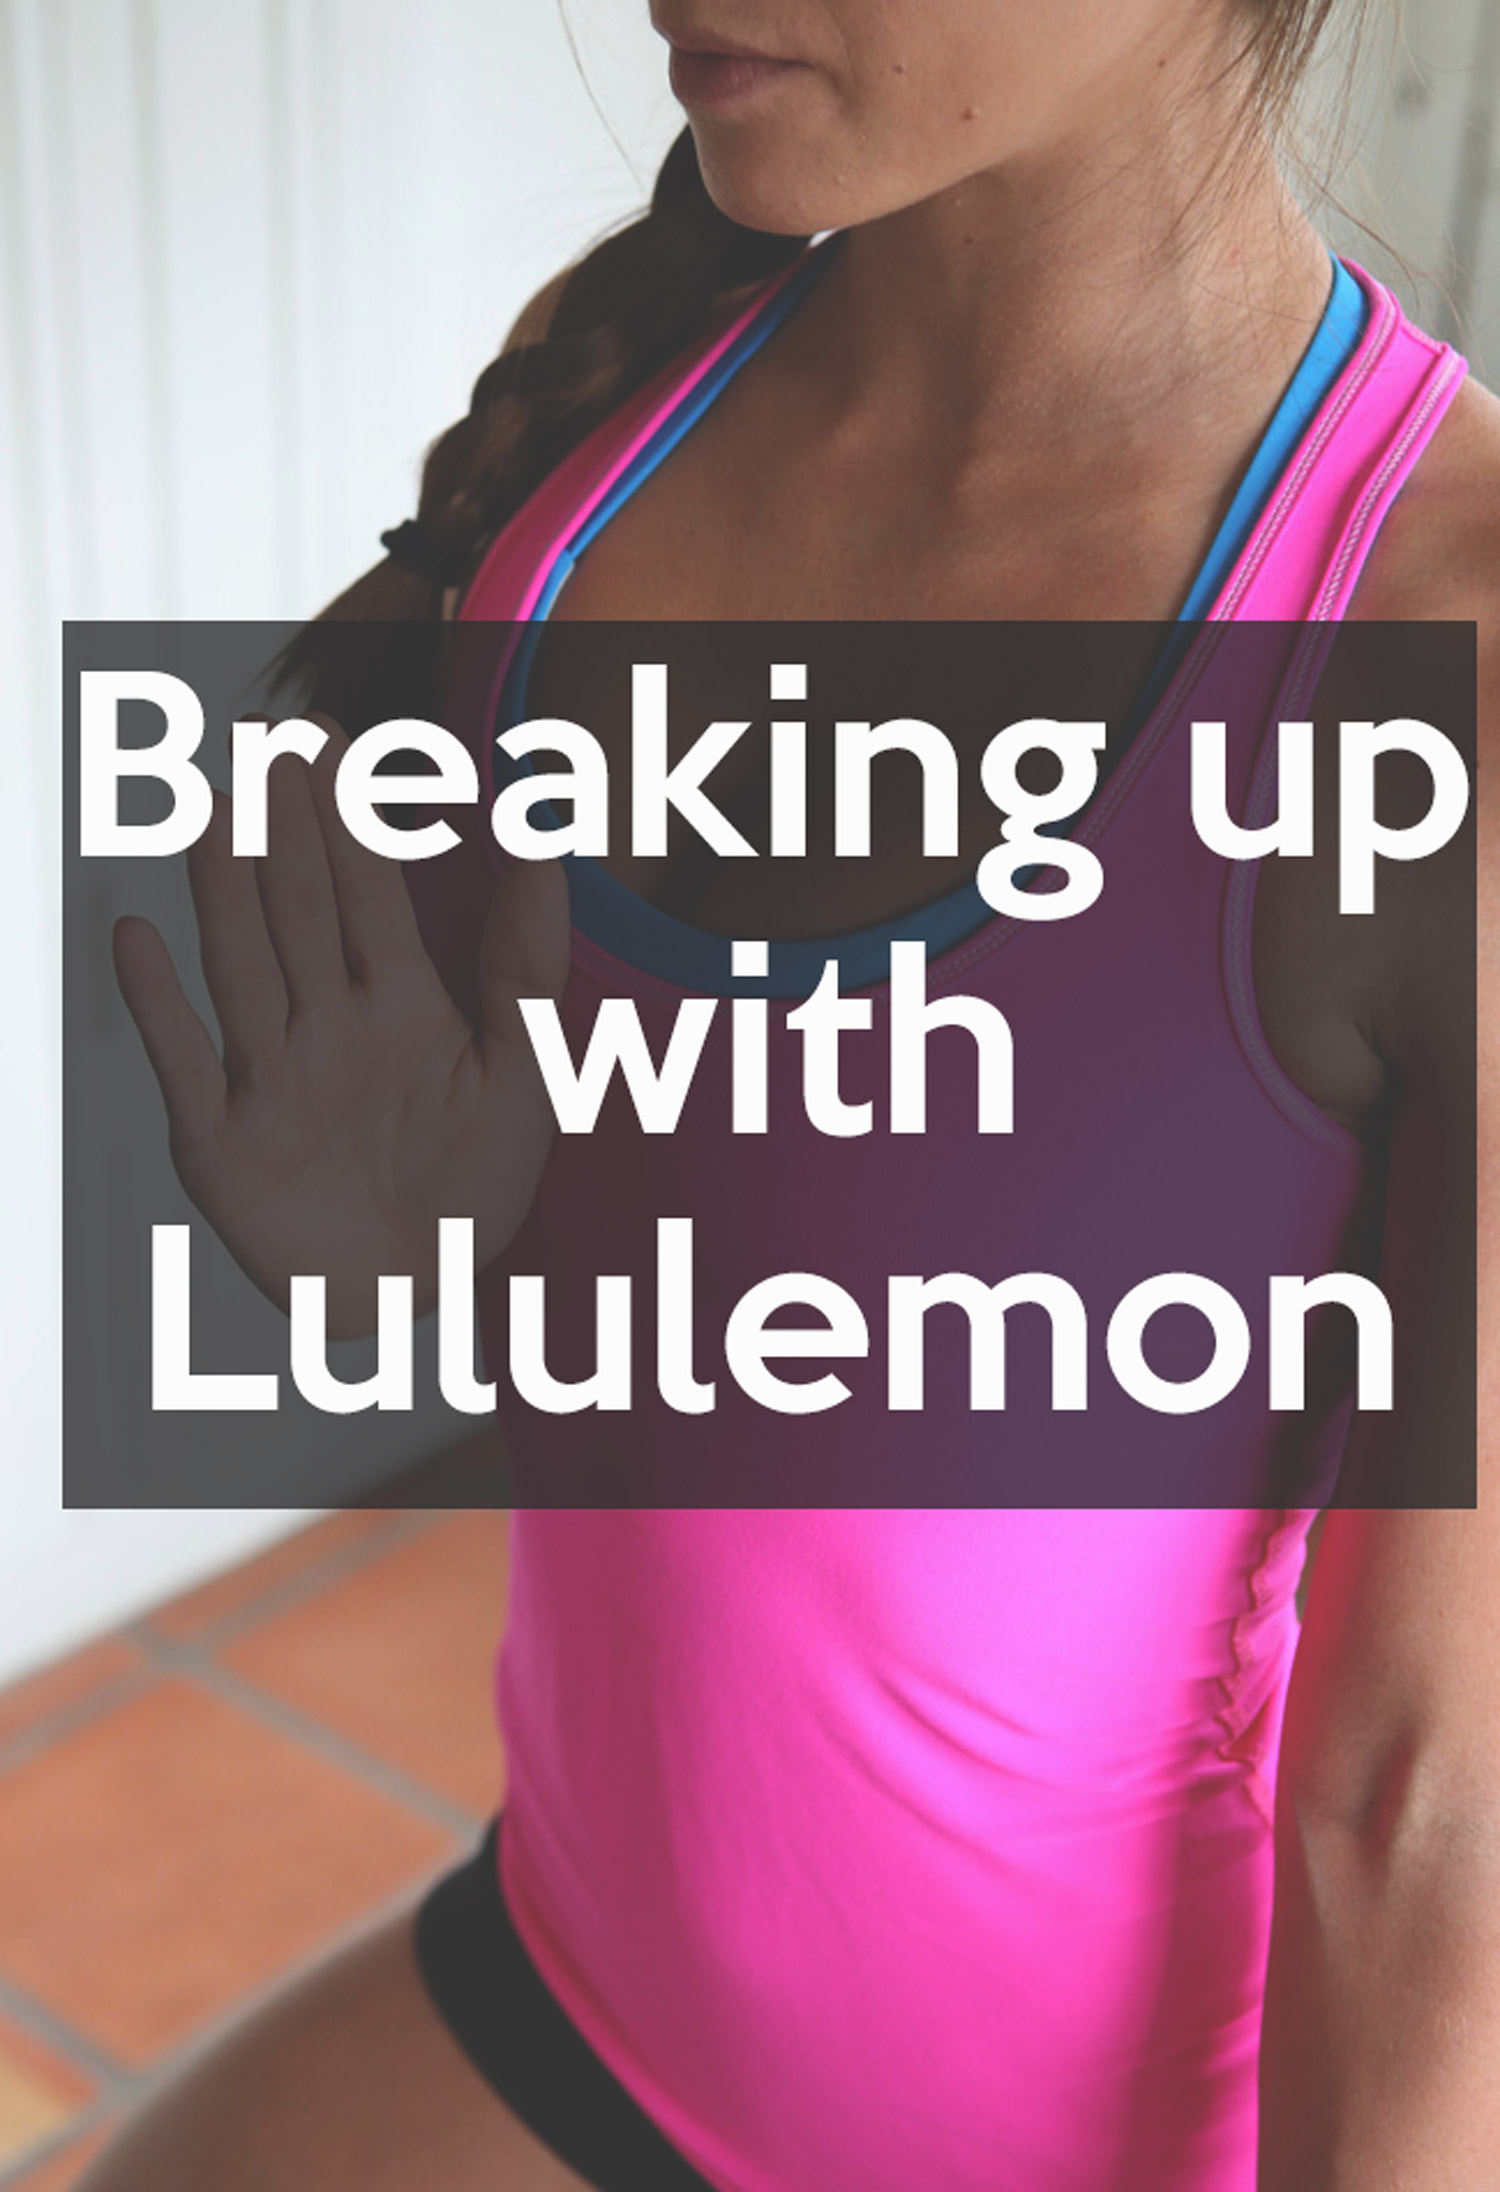 Breaking up with Lululemon